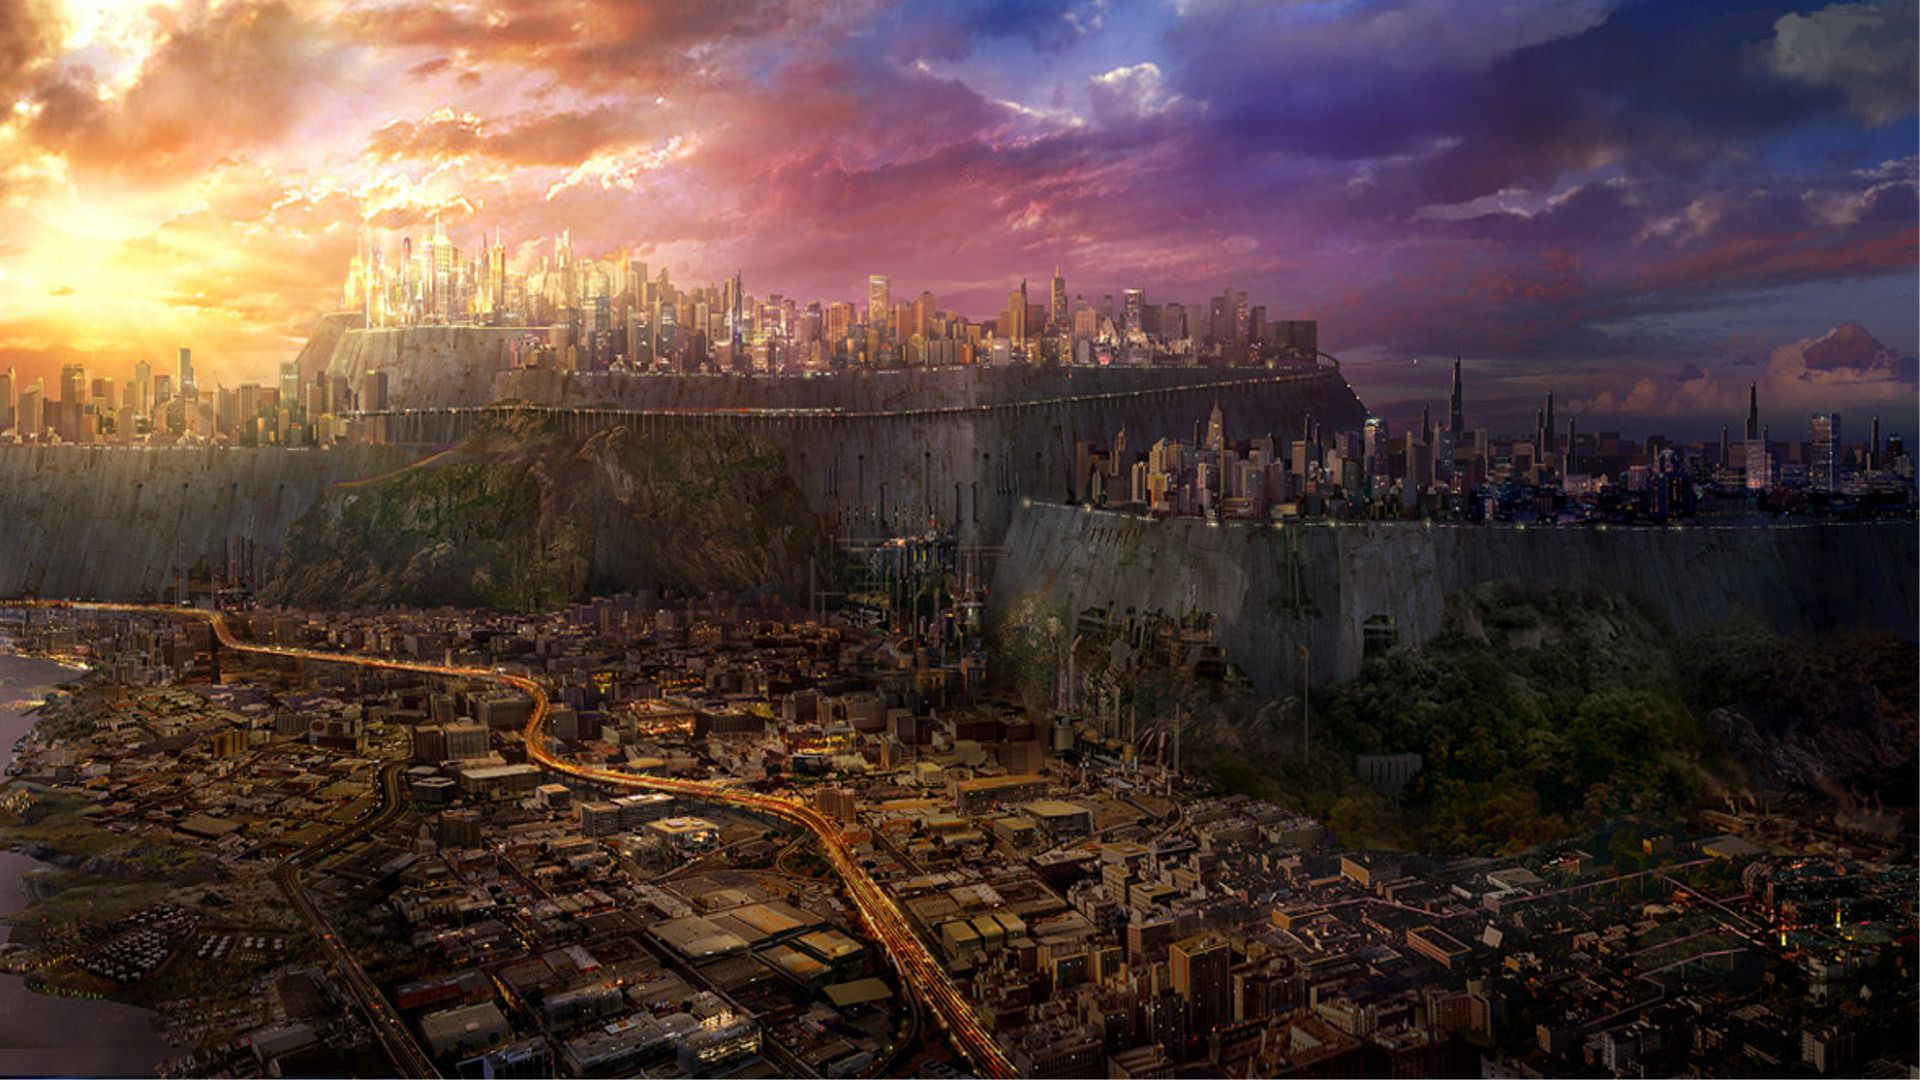 4k Futuristic Wallpaper Google Search Fantasy City Futuristic City City Wallpaper